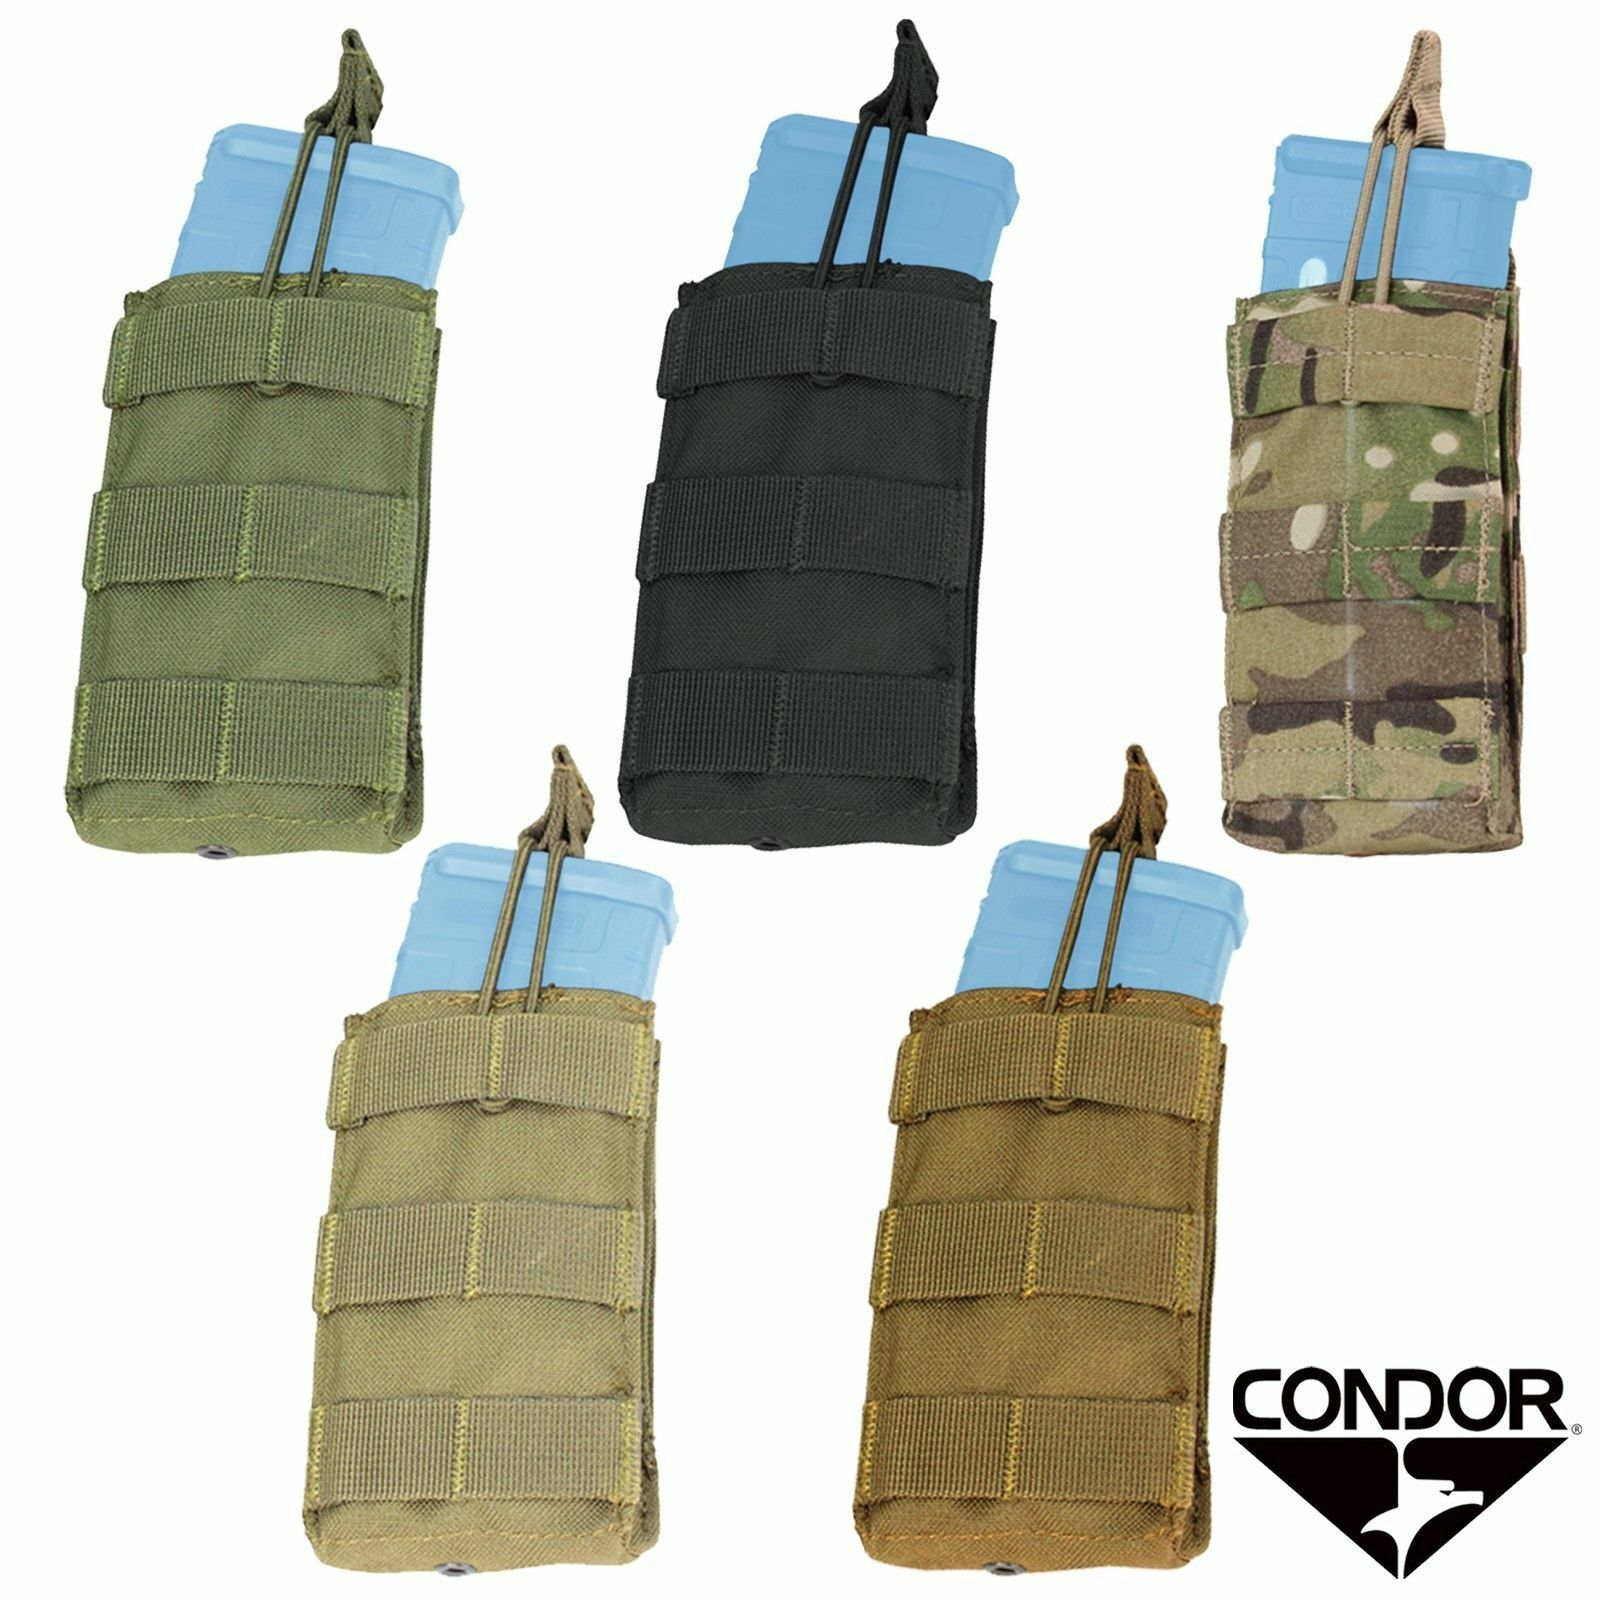 Condor MA42 MOLLE Open Top Bungee Single Stacker 5.56//.223 Rifle Magazine Pouch